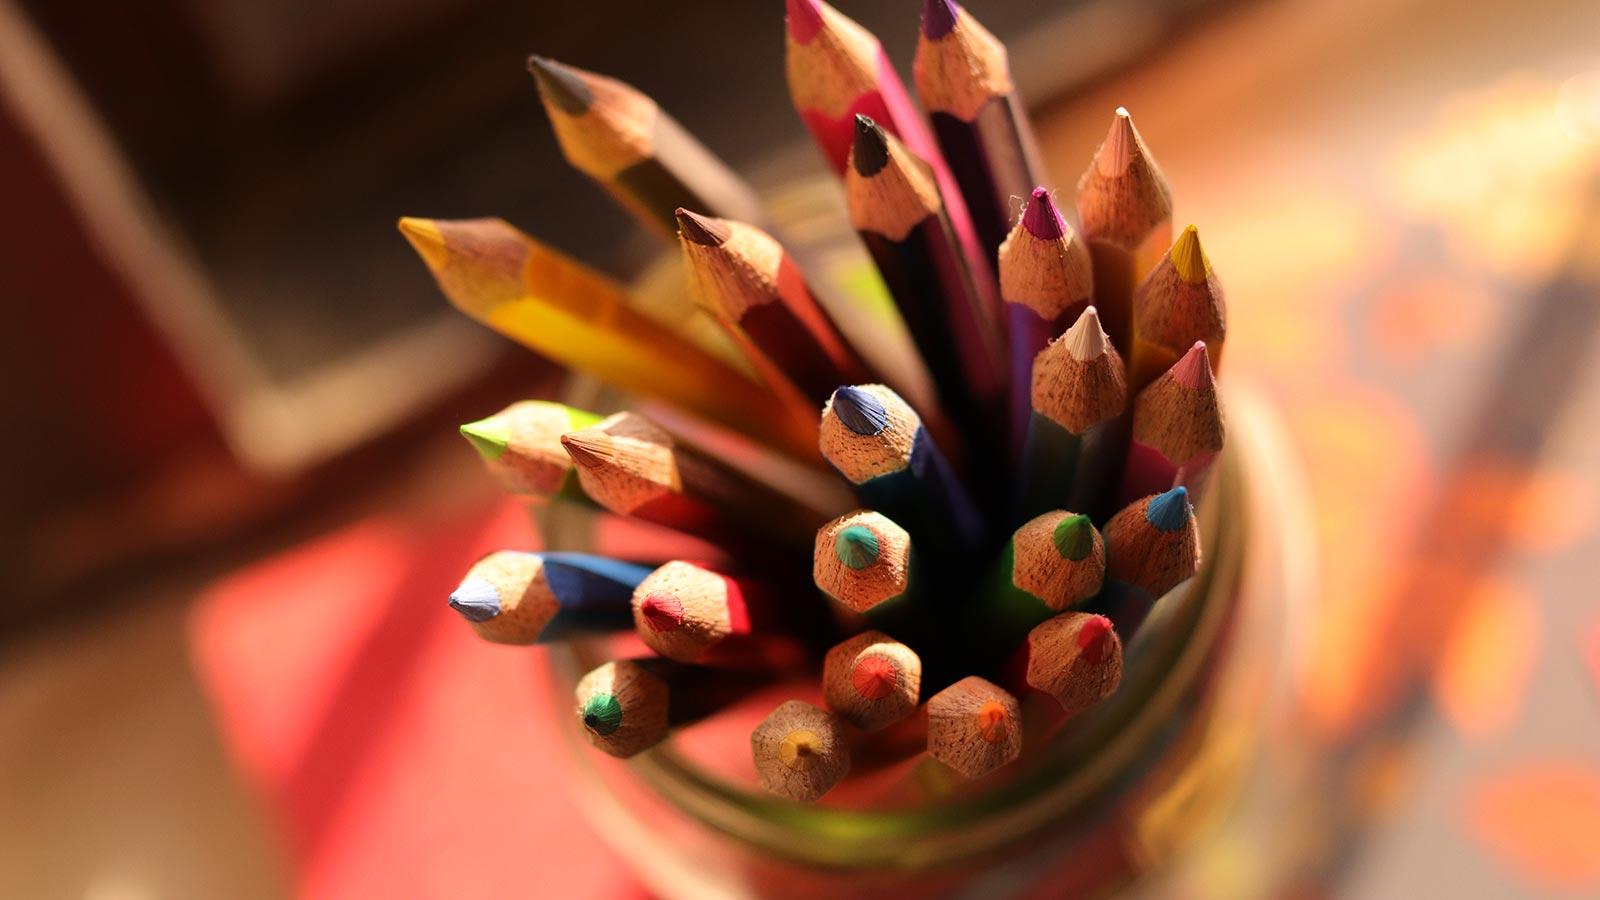 A mason jar filled with colored pencils.